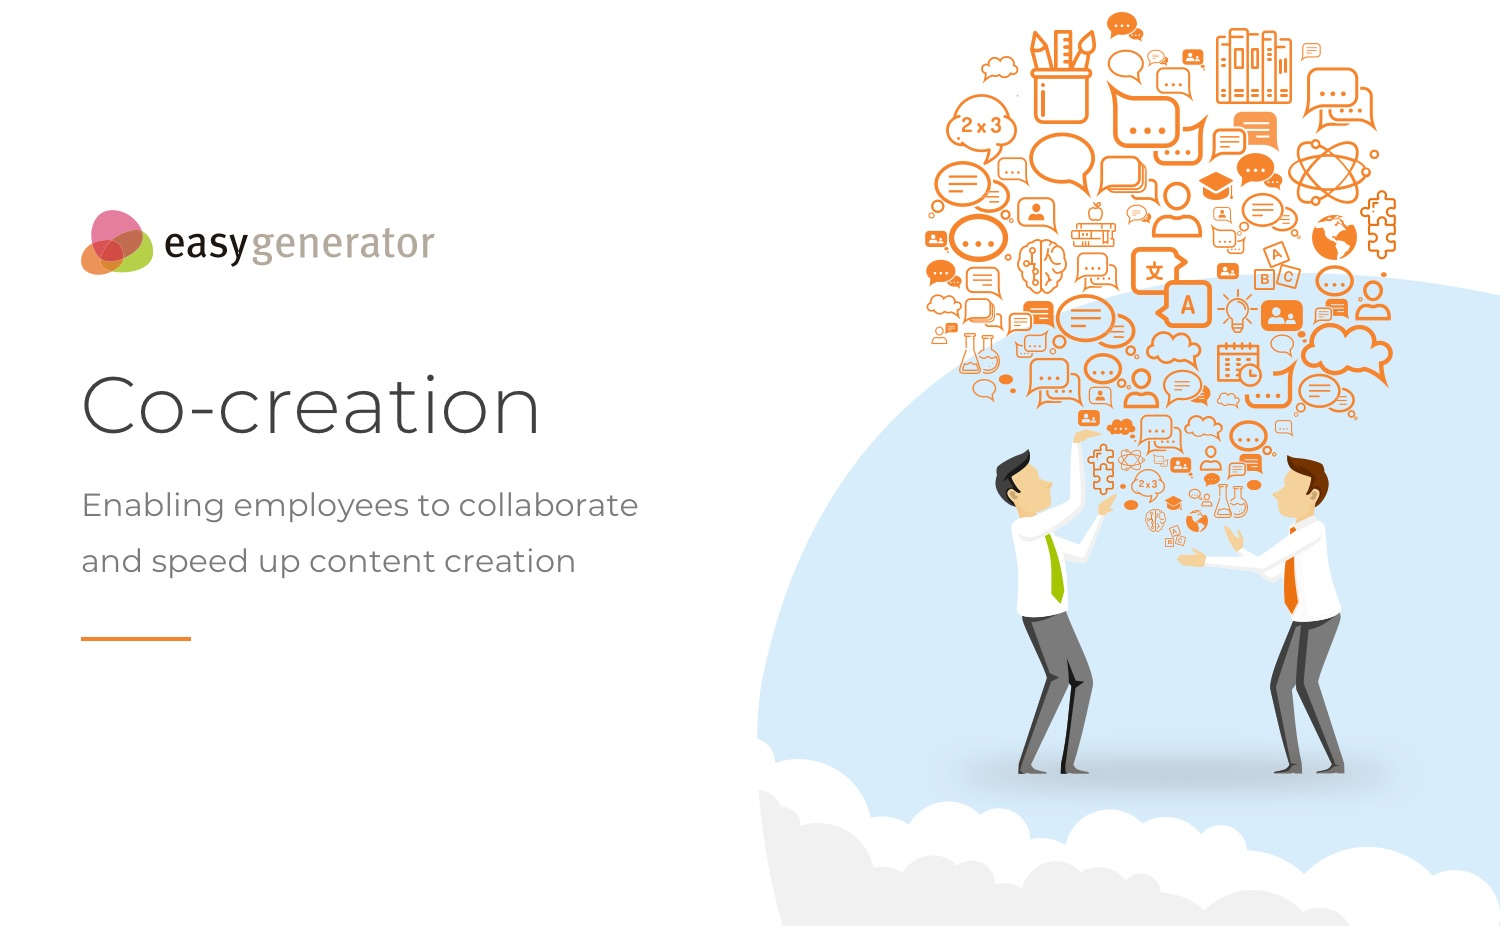 Employee-generated Learning co-creation